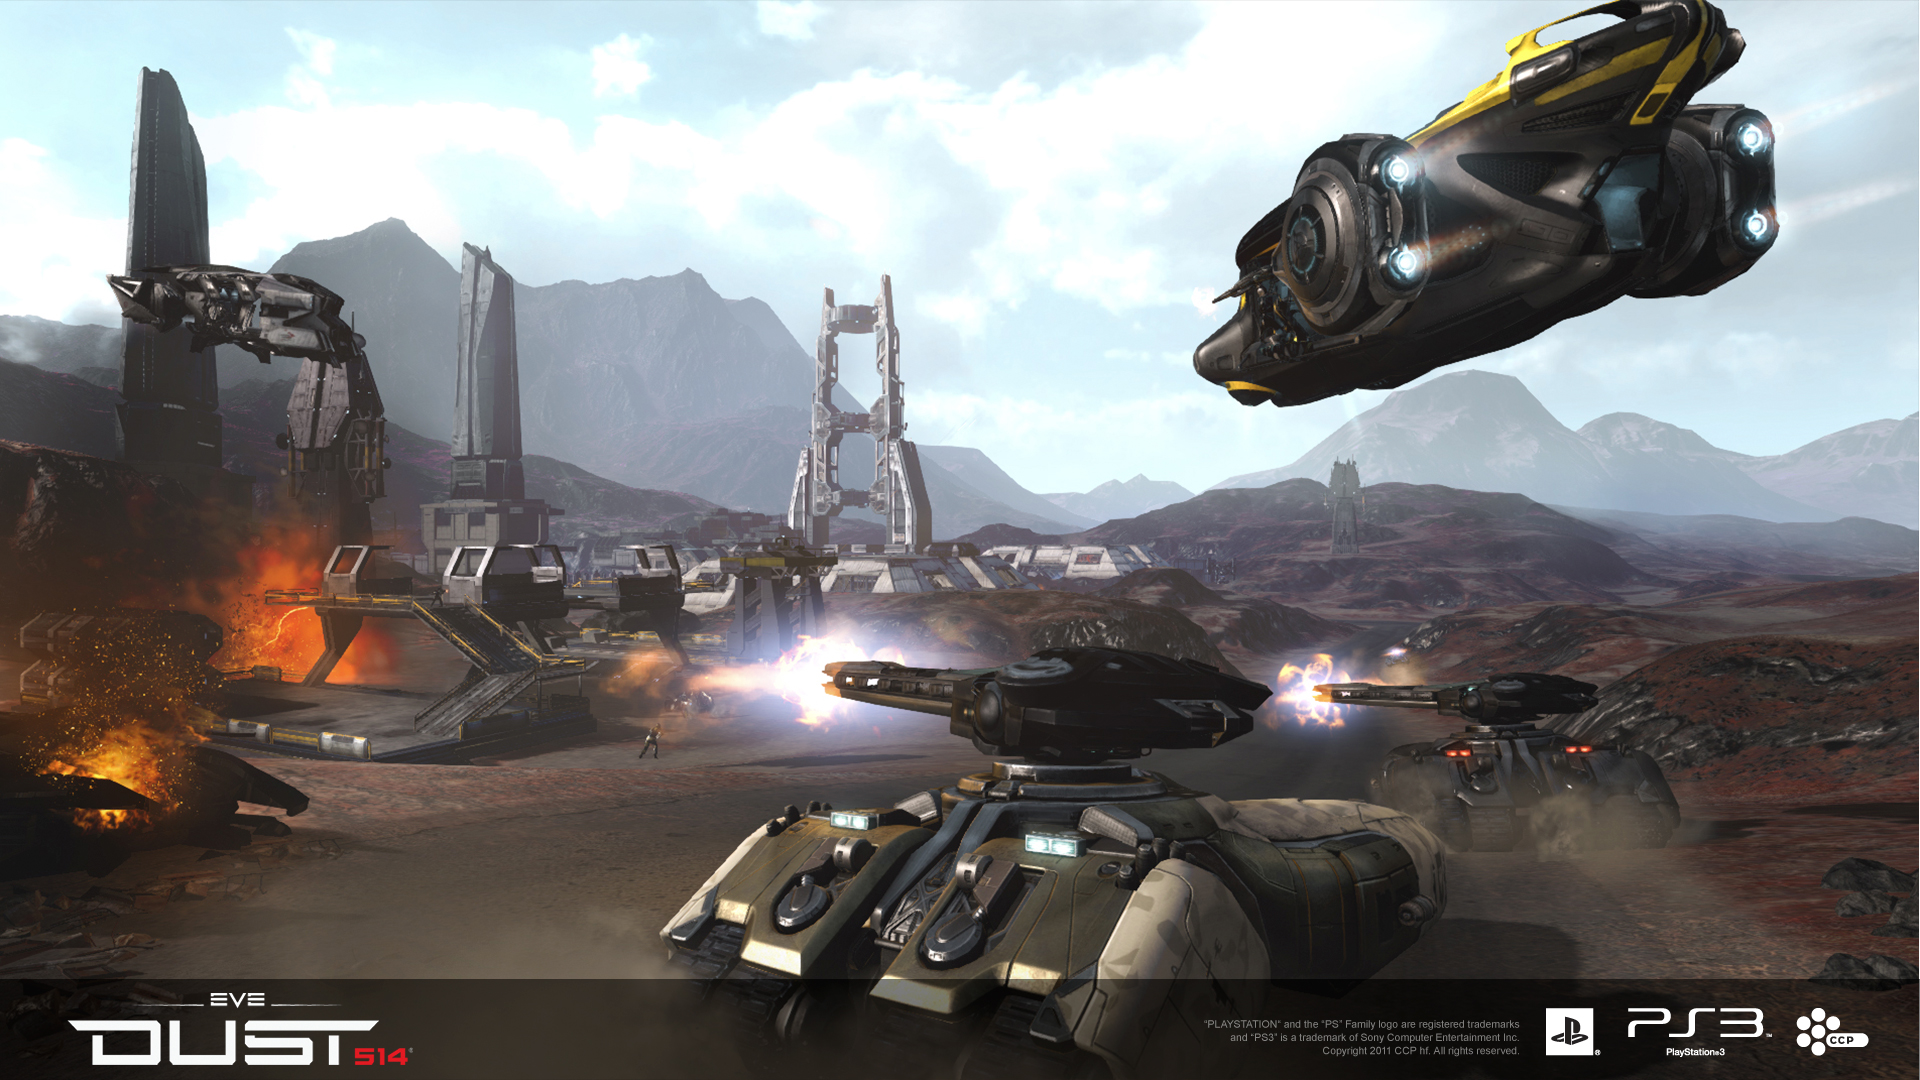 Dust 514 Review Diary: Part One